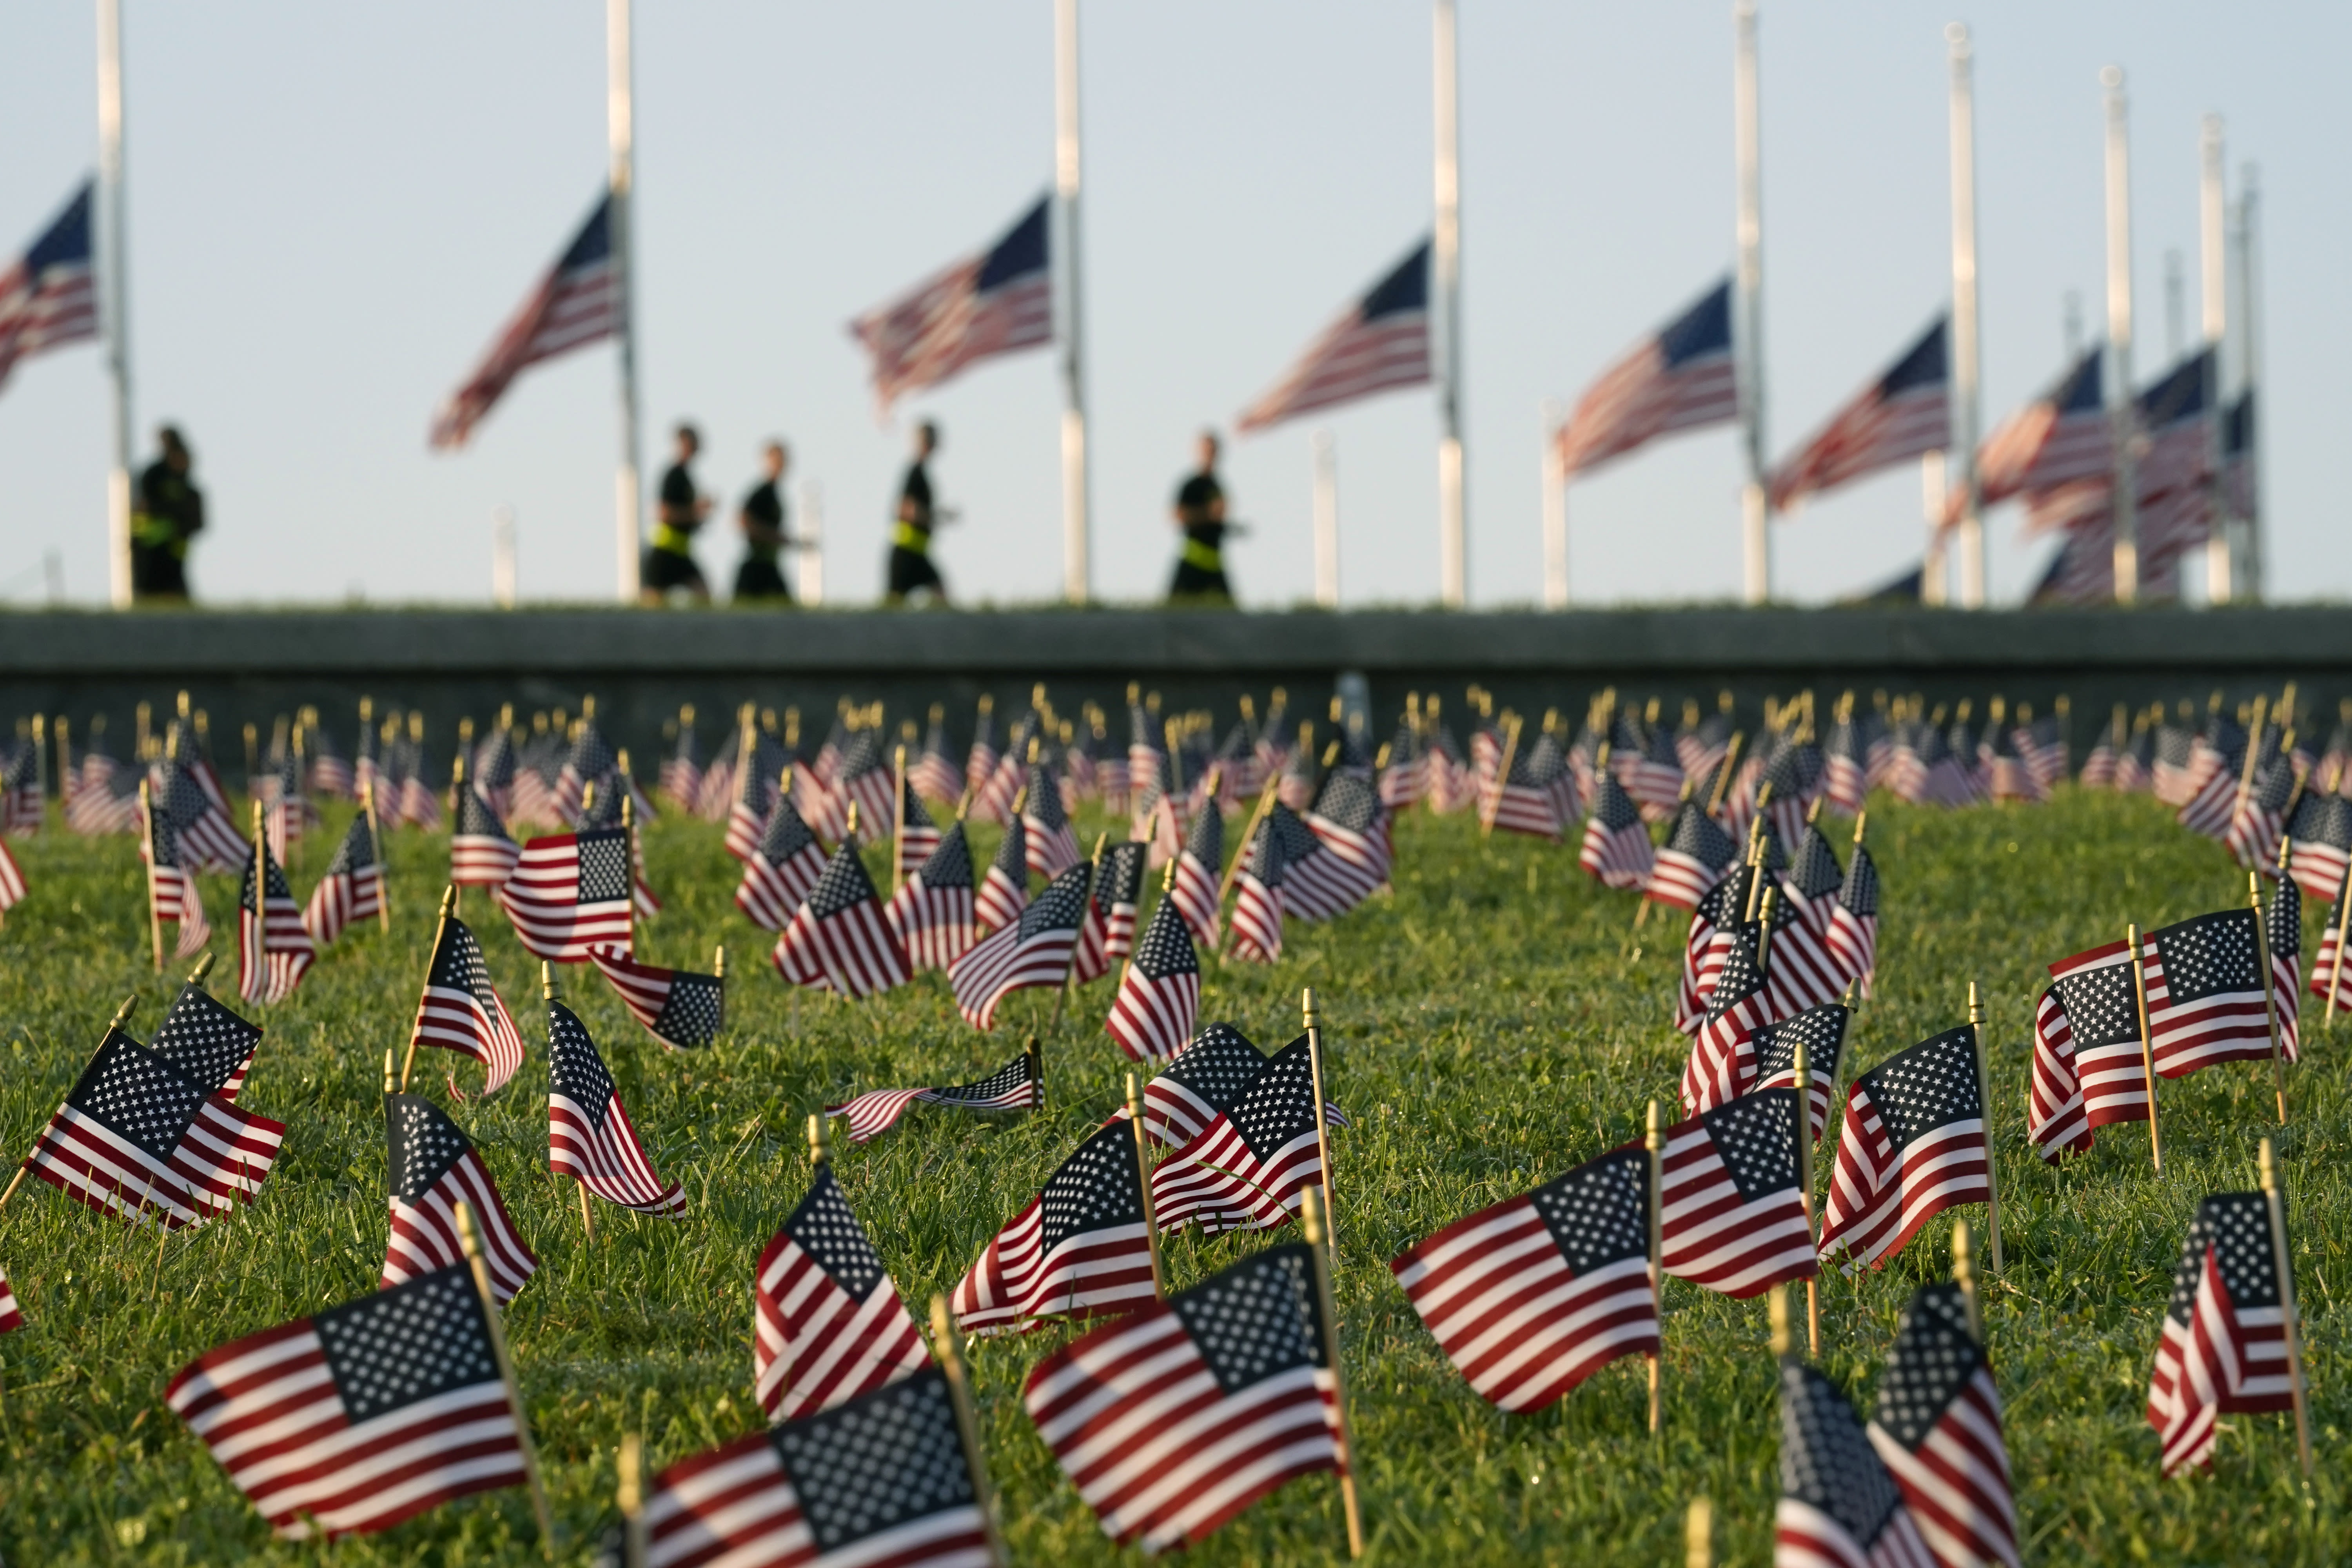 Activists from the COVID Memorial Project mark the deaths of 200,000 lives lost in the U.S. to COVID-19 after placing thousands of small American flags on the grounds of the National Mall in Washington, Tuesday, Sept. 22, 2020. (AP Photo/J. Scott Applewhite)